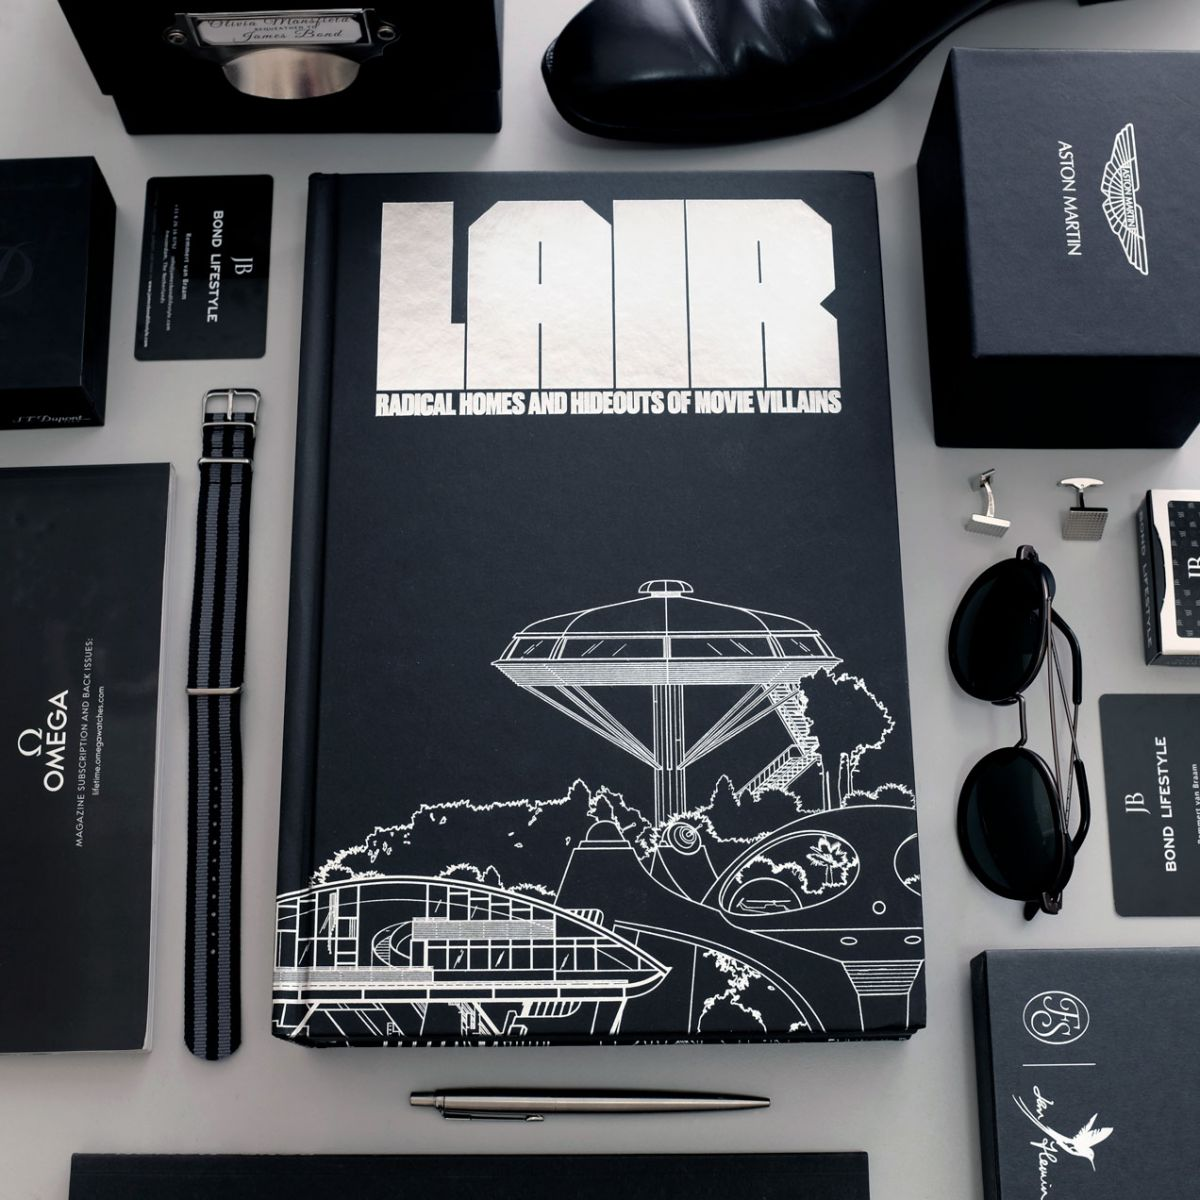 win Lair book